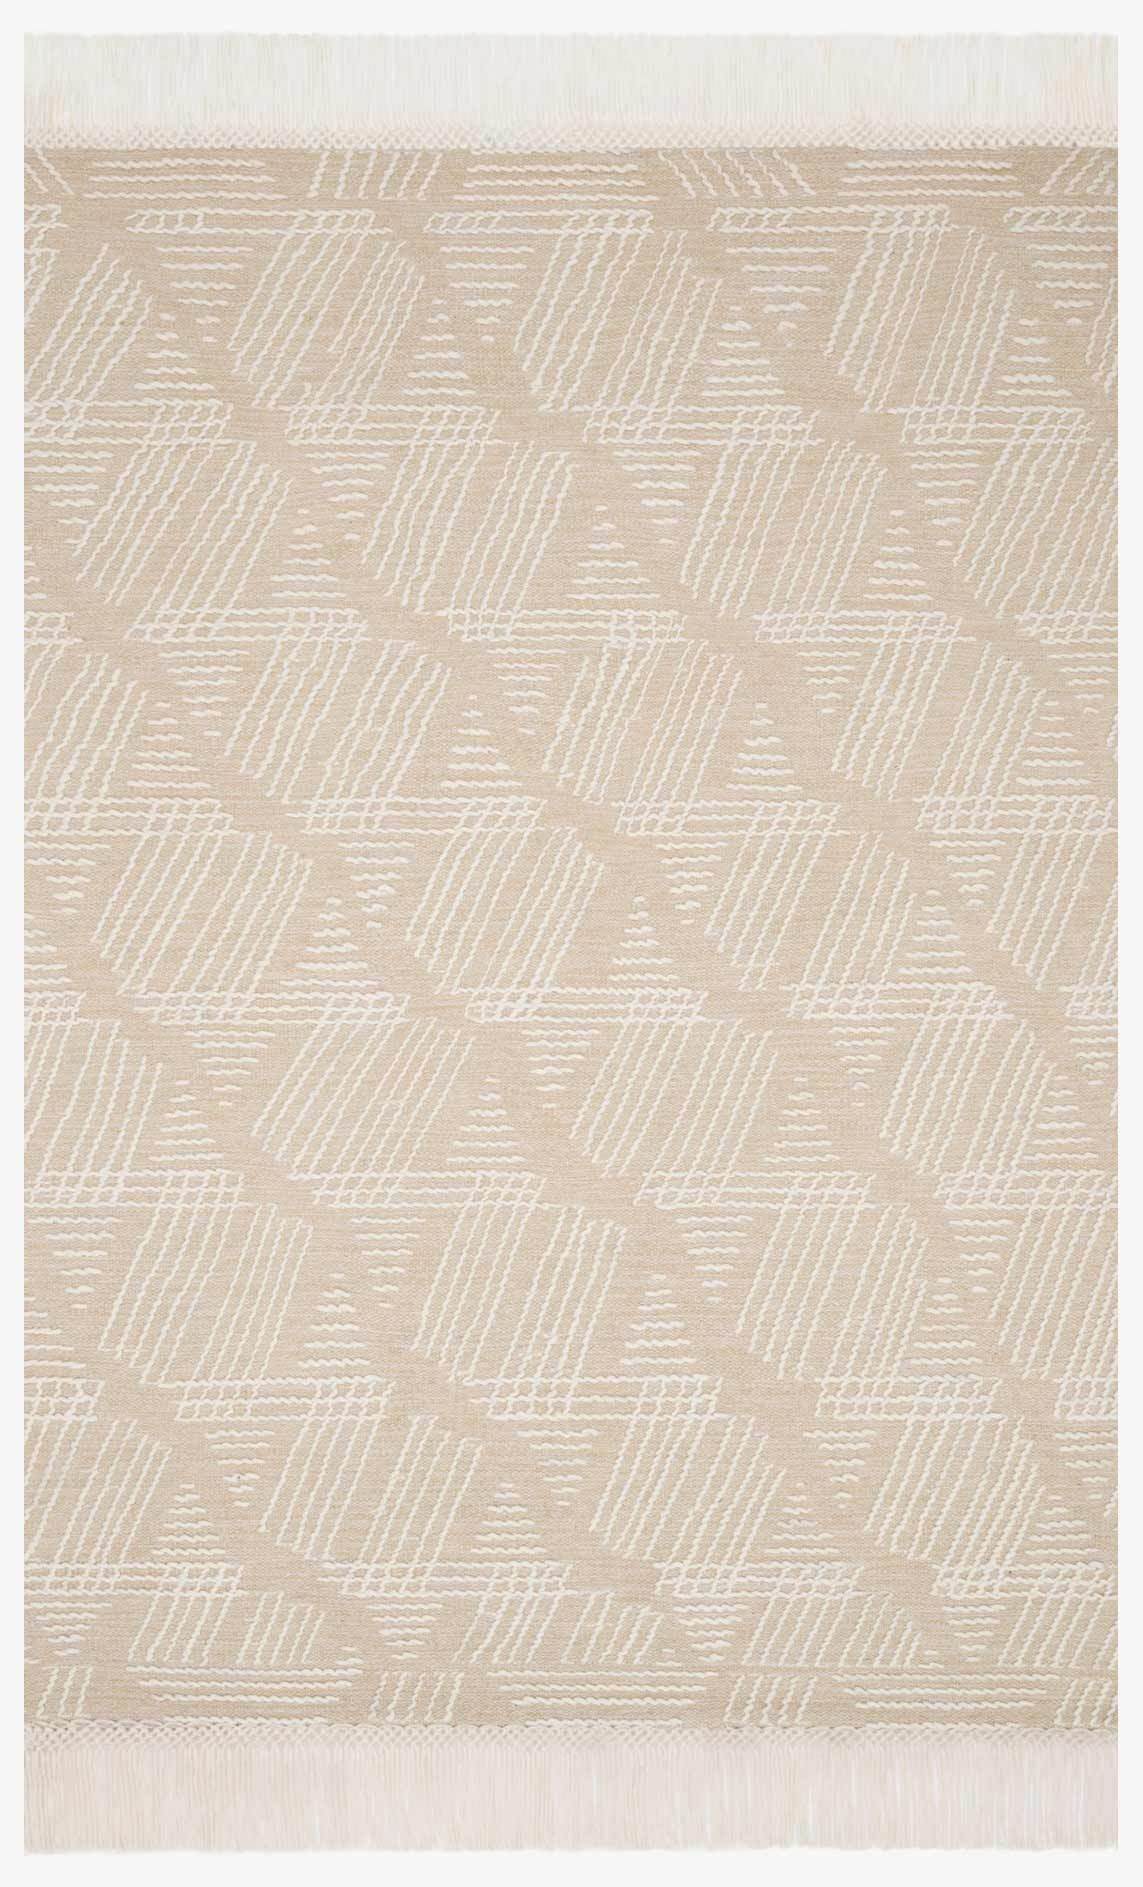 Newton Collection Sand Ivory In 2020 Magnolia Homes Ivory Rug Textured Yarn